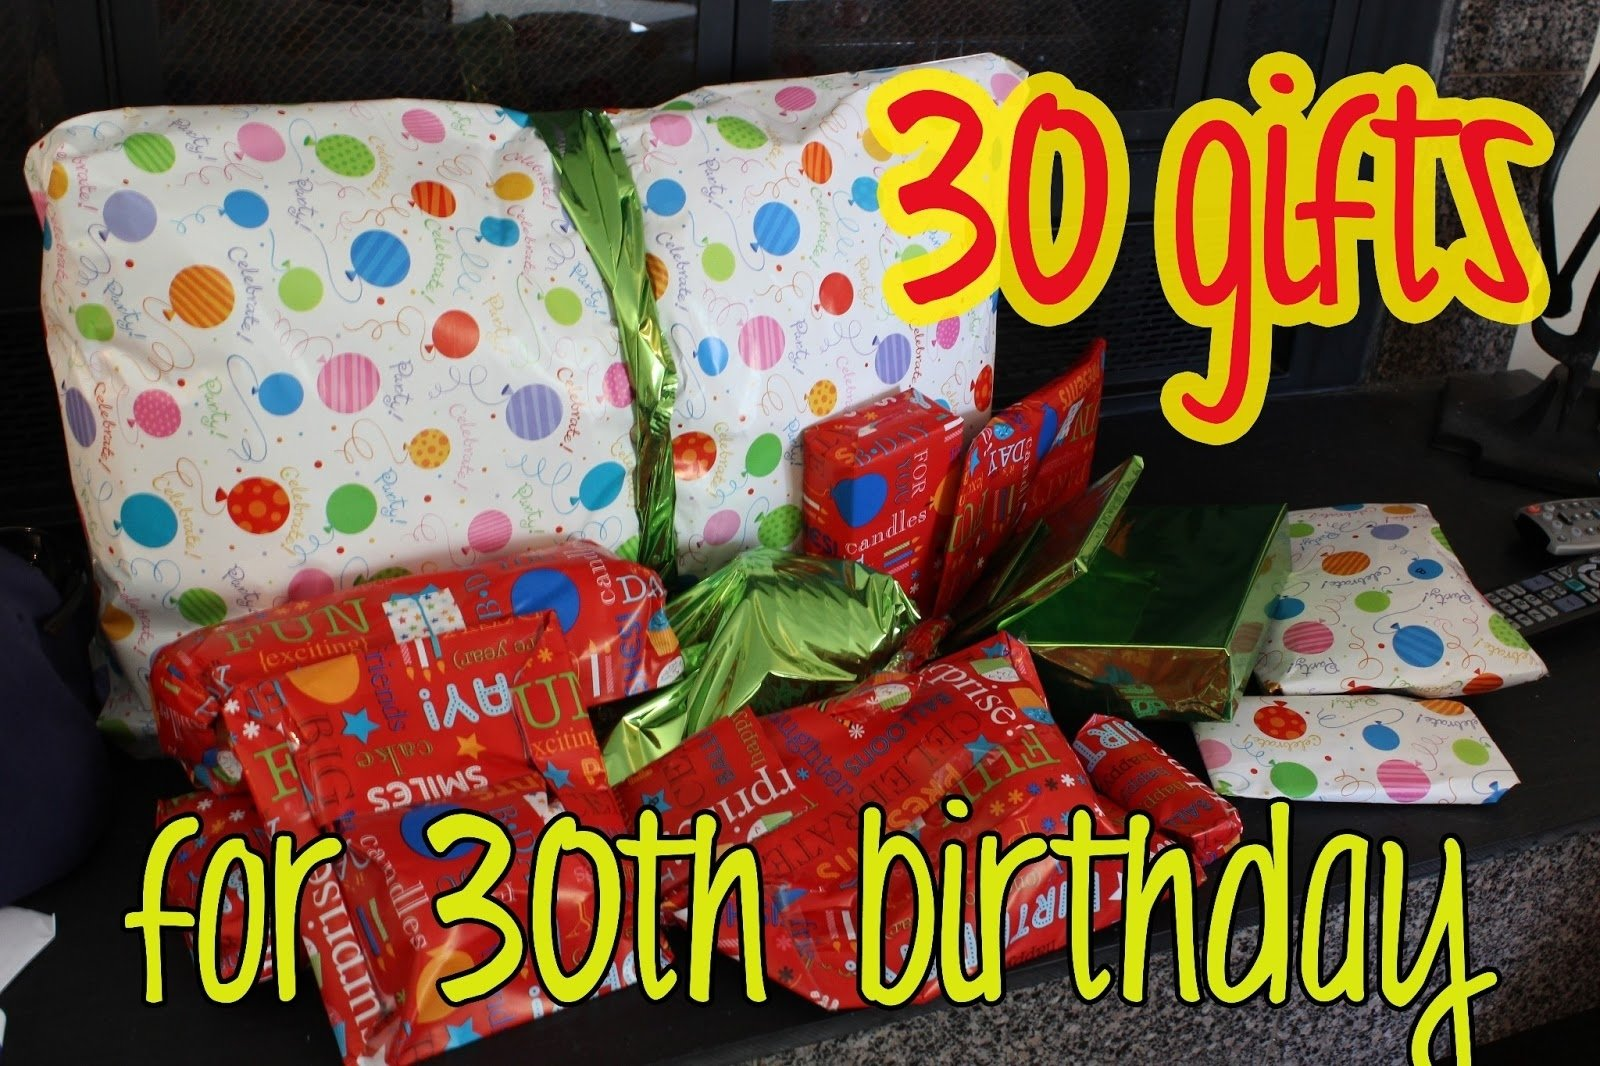 10 Lovely Cheap Birthday Ideas For Husband love elizabethany gift idea 30 gifts for 30th birthday 13